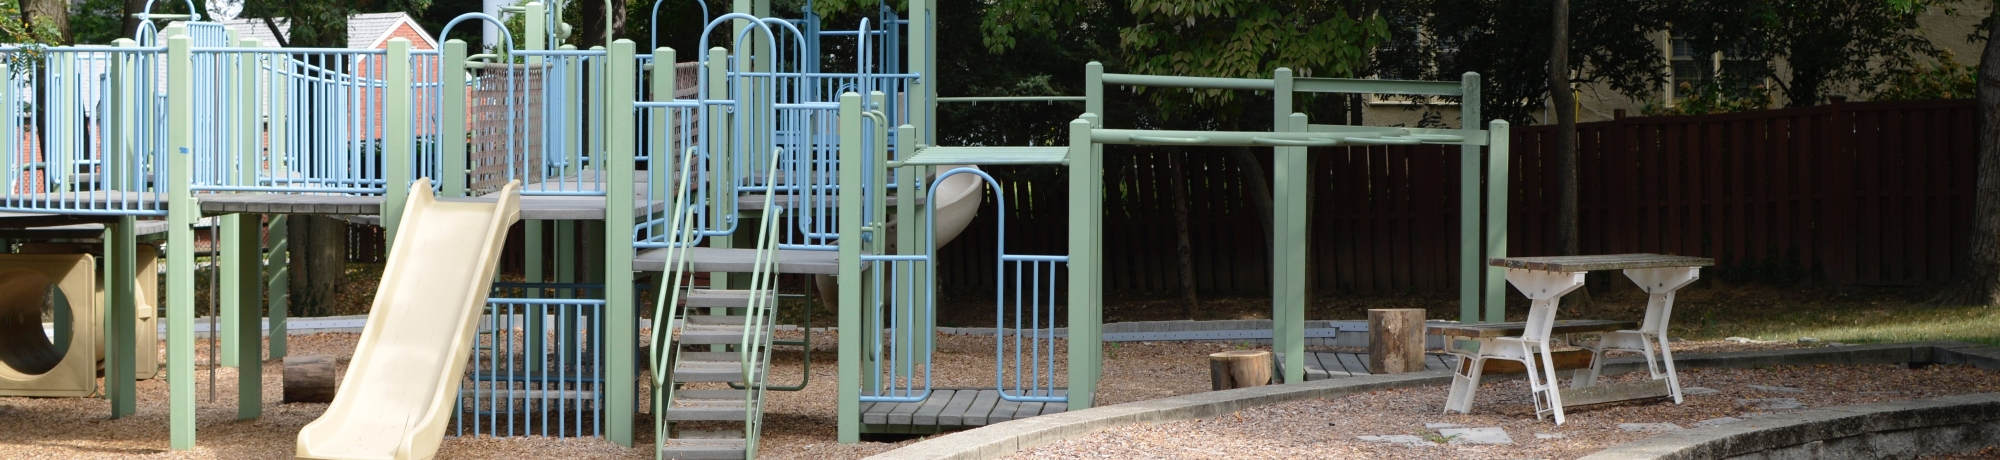 playground structure with slides and climbing bars